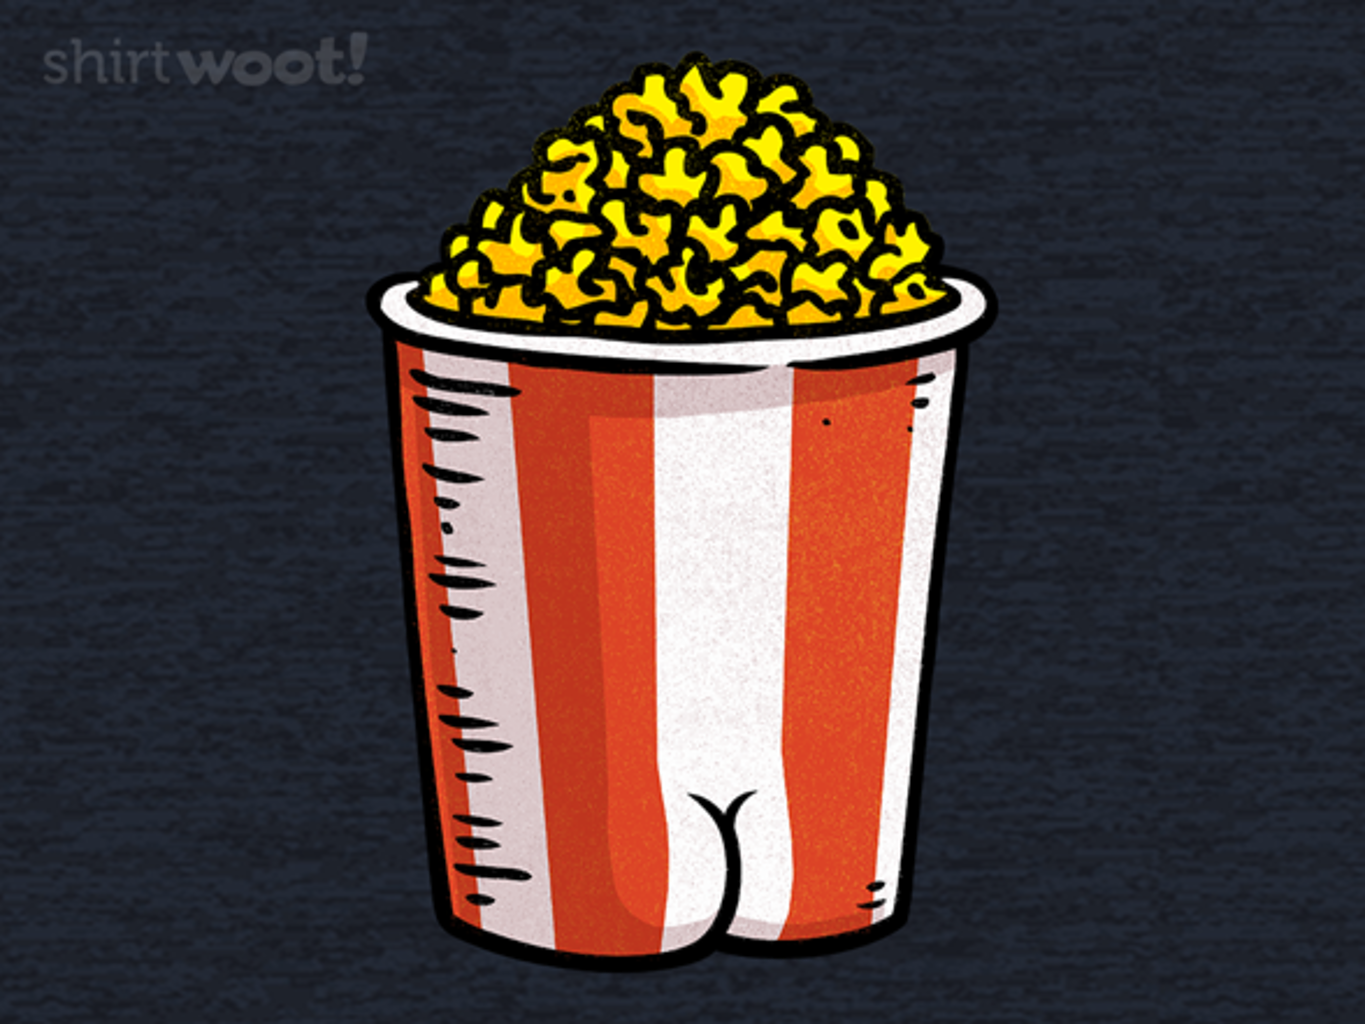 Woot!: BUTTery Popcorn